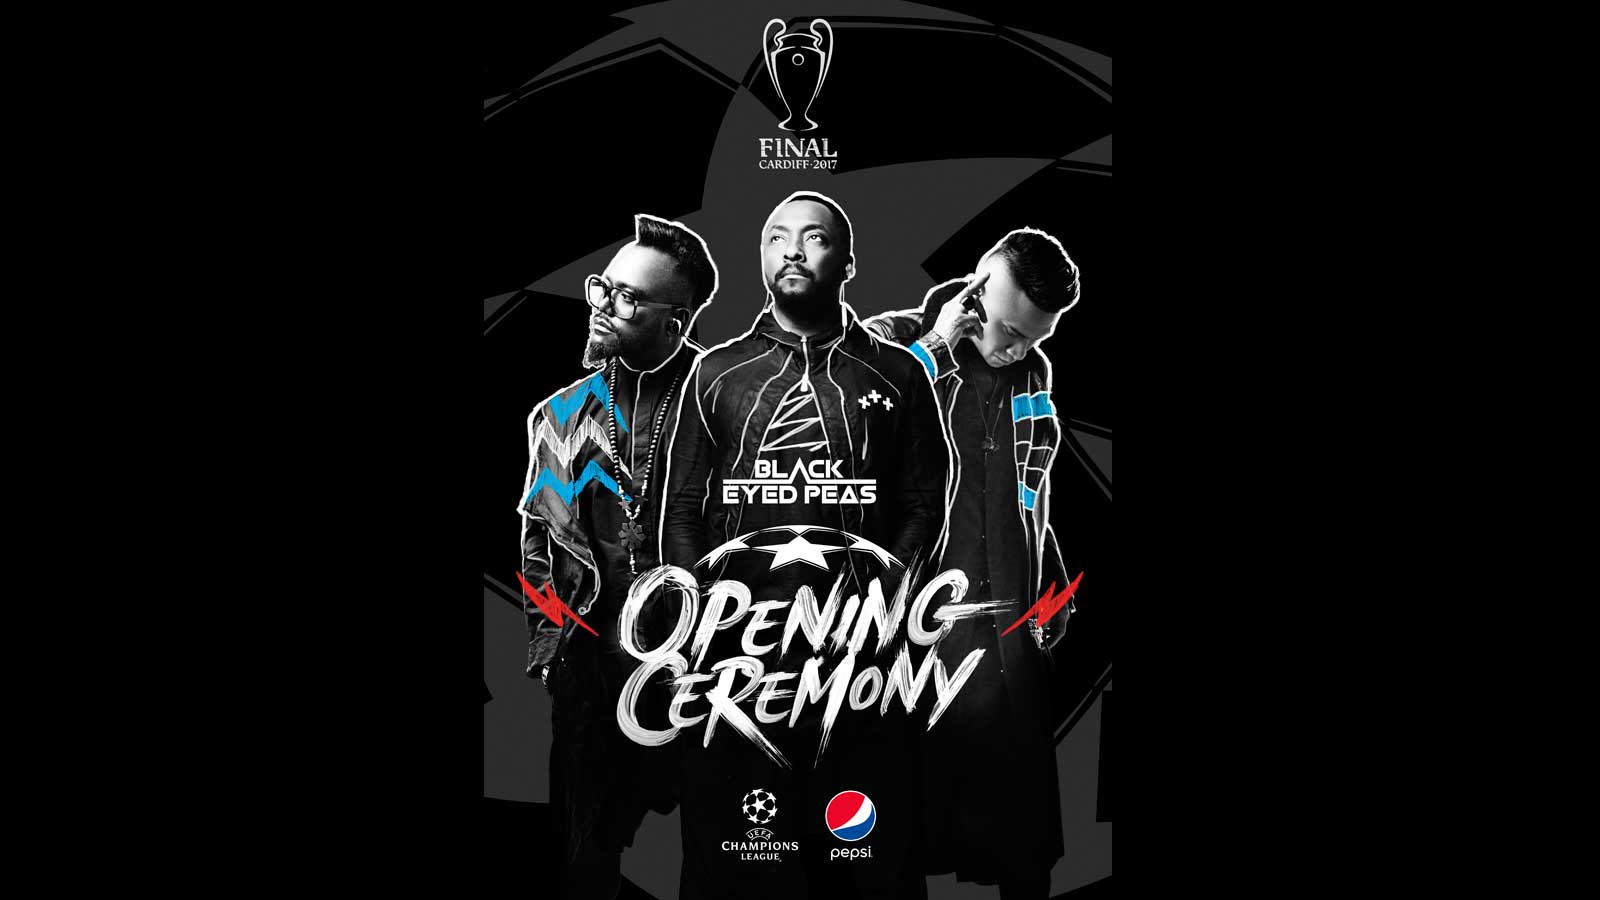 UEFA and Pepsi celebrate football fandom at UEFA Champions League Final Opening Ceremony